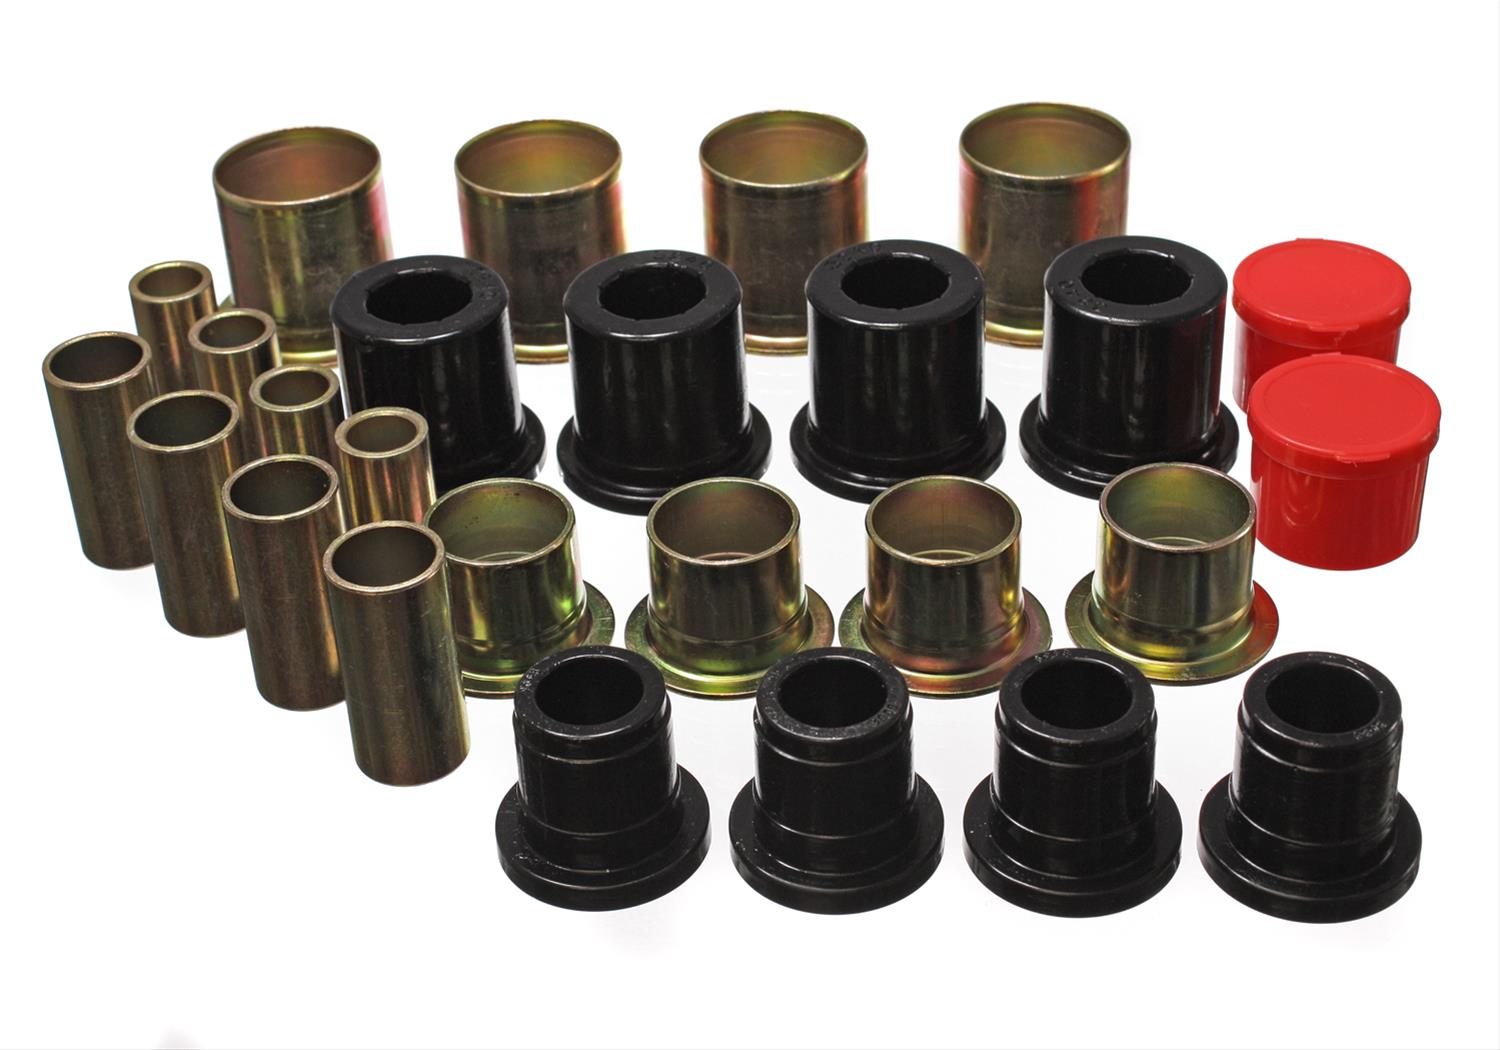 Energy Suspension Control Arm Bushing Sets 3.3161G - Free Shipping on  Orders Over $99 at Summit Racing